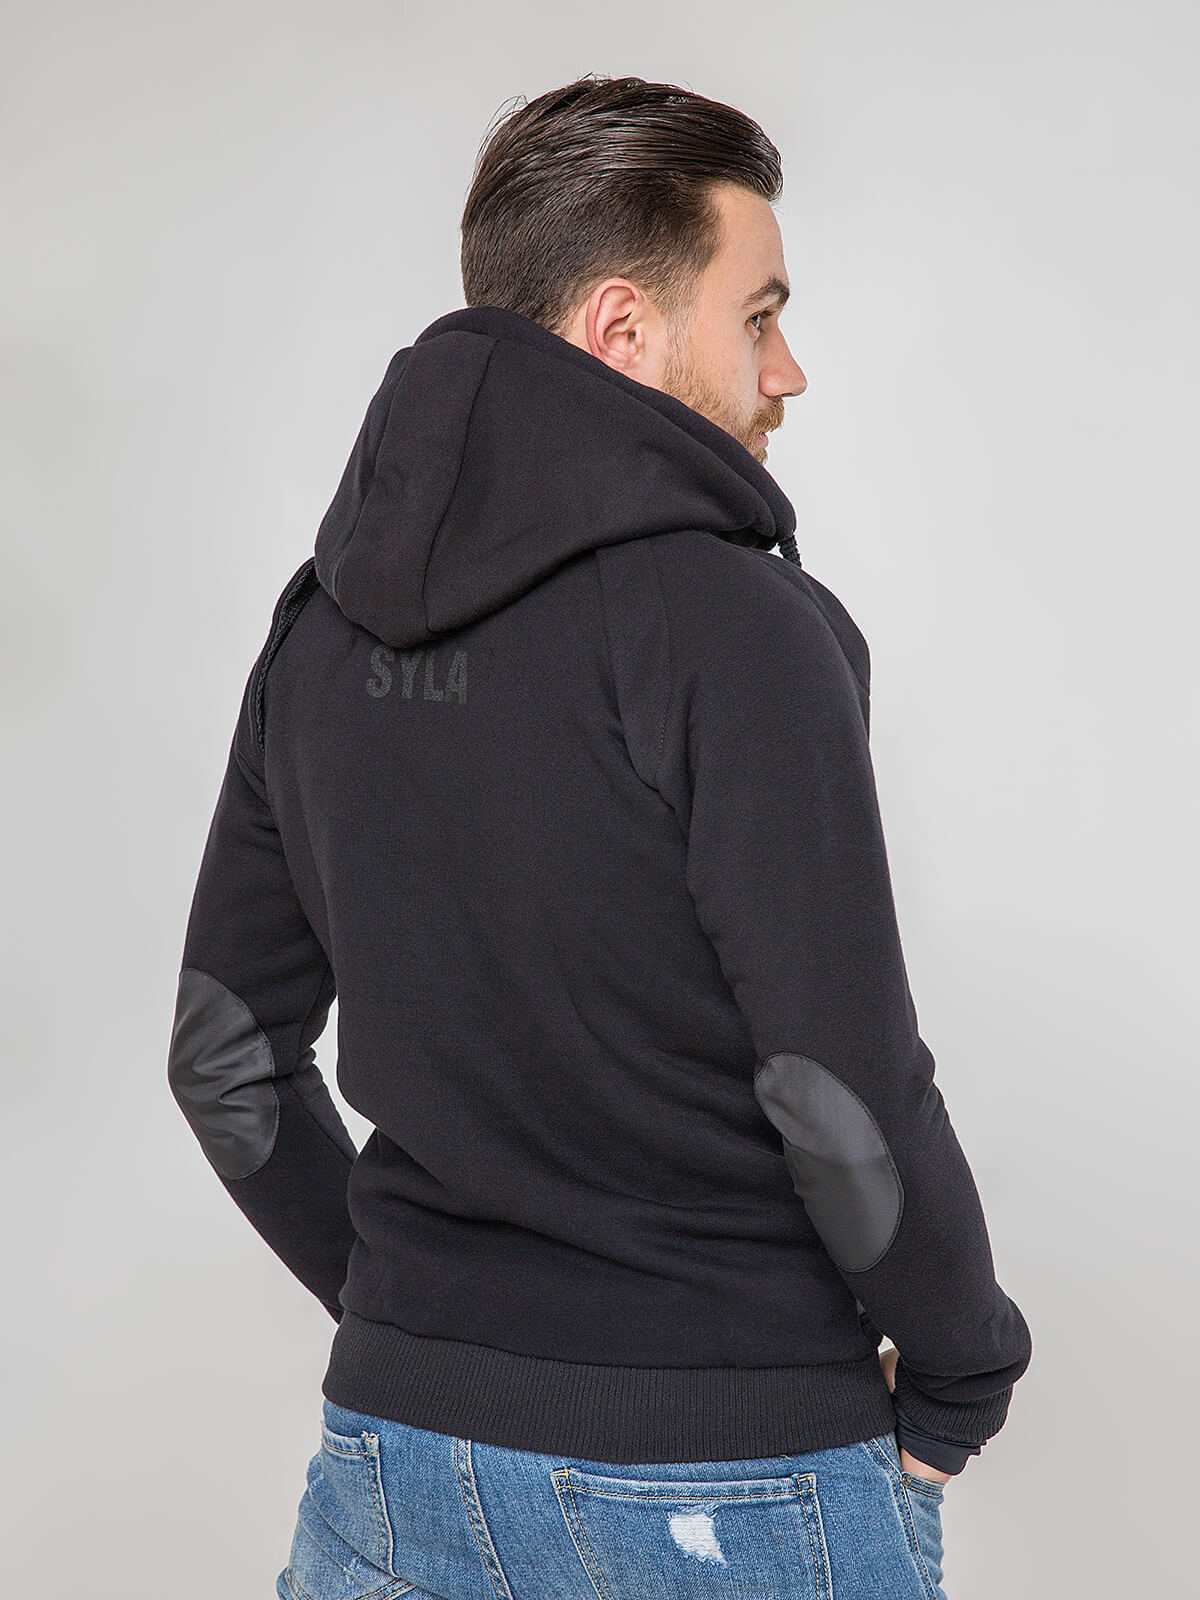 Men's Hoodie Syla. Color black.  Material of the hoodie – three-cord thread fabric: 77% cotton, 23% polyester.